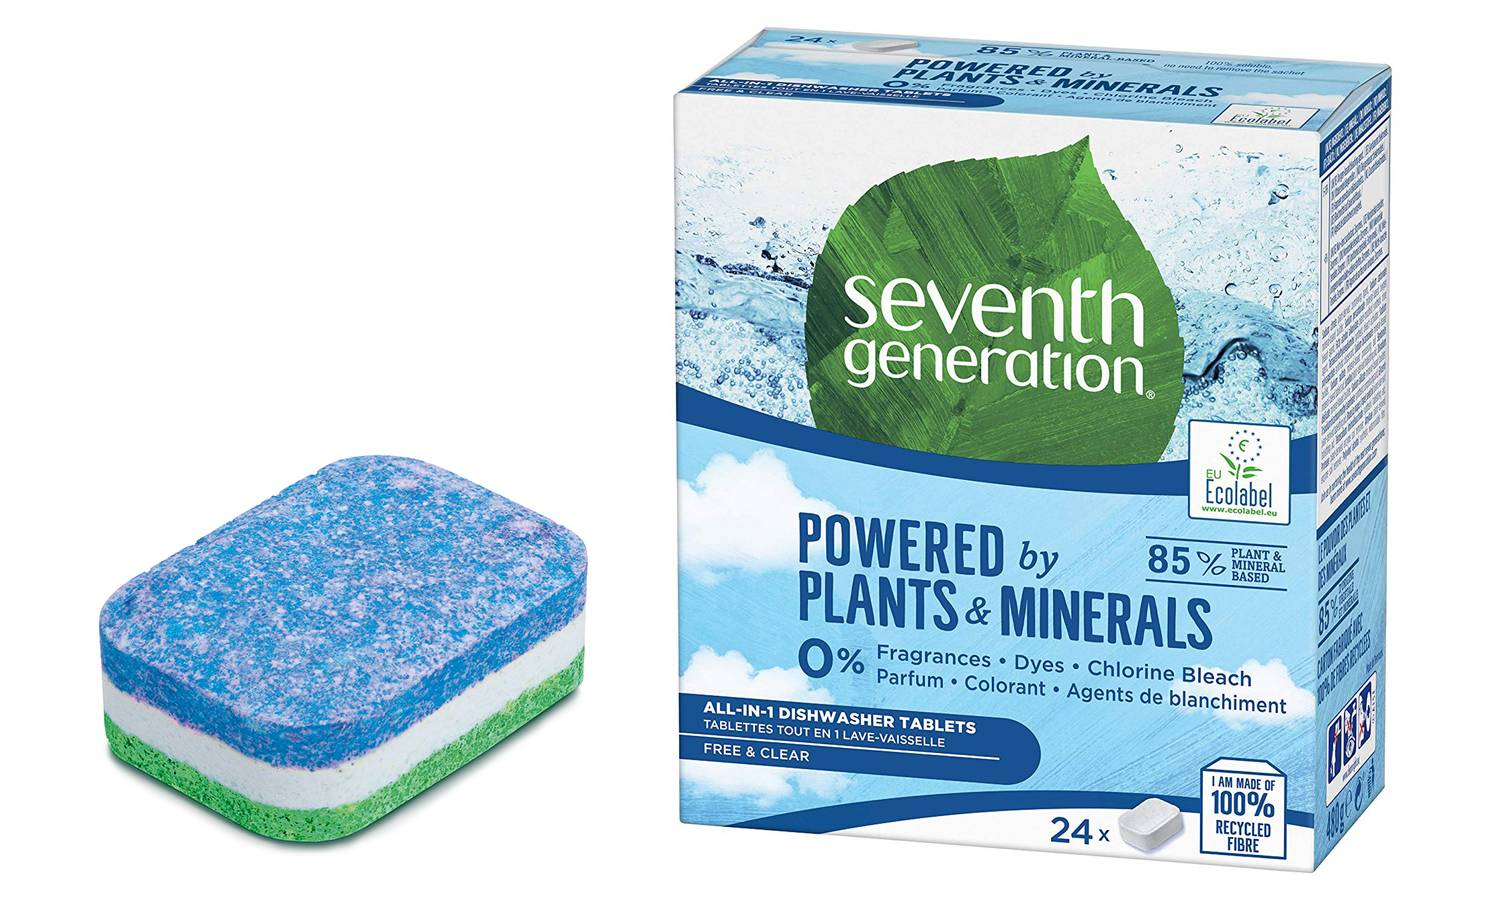 Seventh generation 96 Dishwashing Tablets Free and Clear